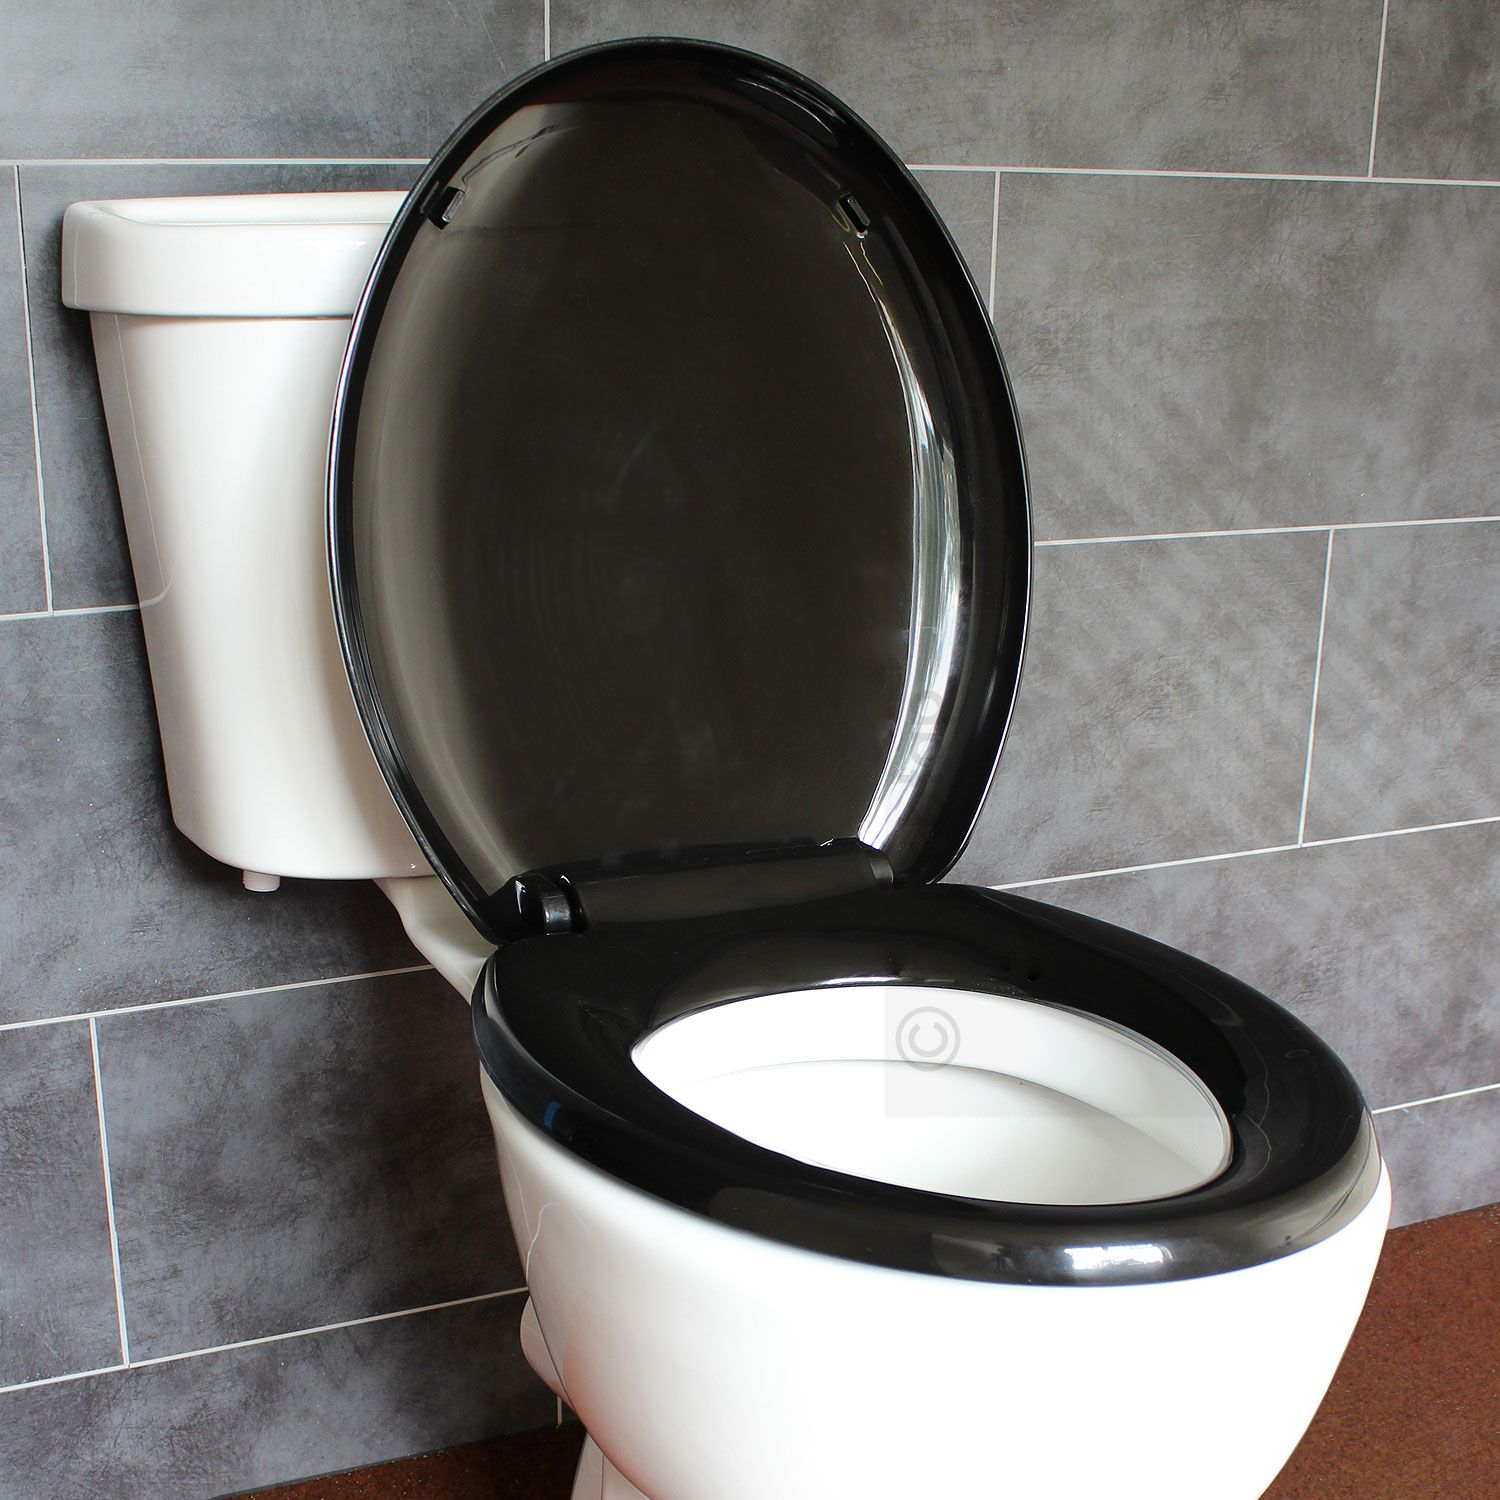 White Toilet With Black Seat. Bathroom Soft Close Black Oval Toilet Seat  Adjustable Top Bottom Fixing Hinges EcoSpa